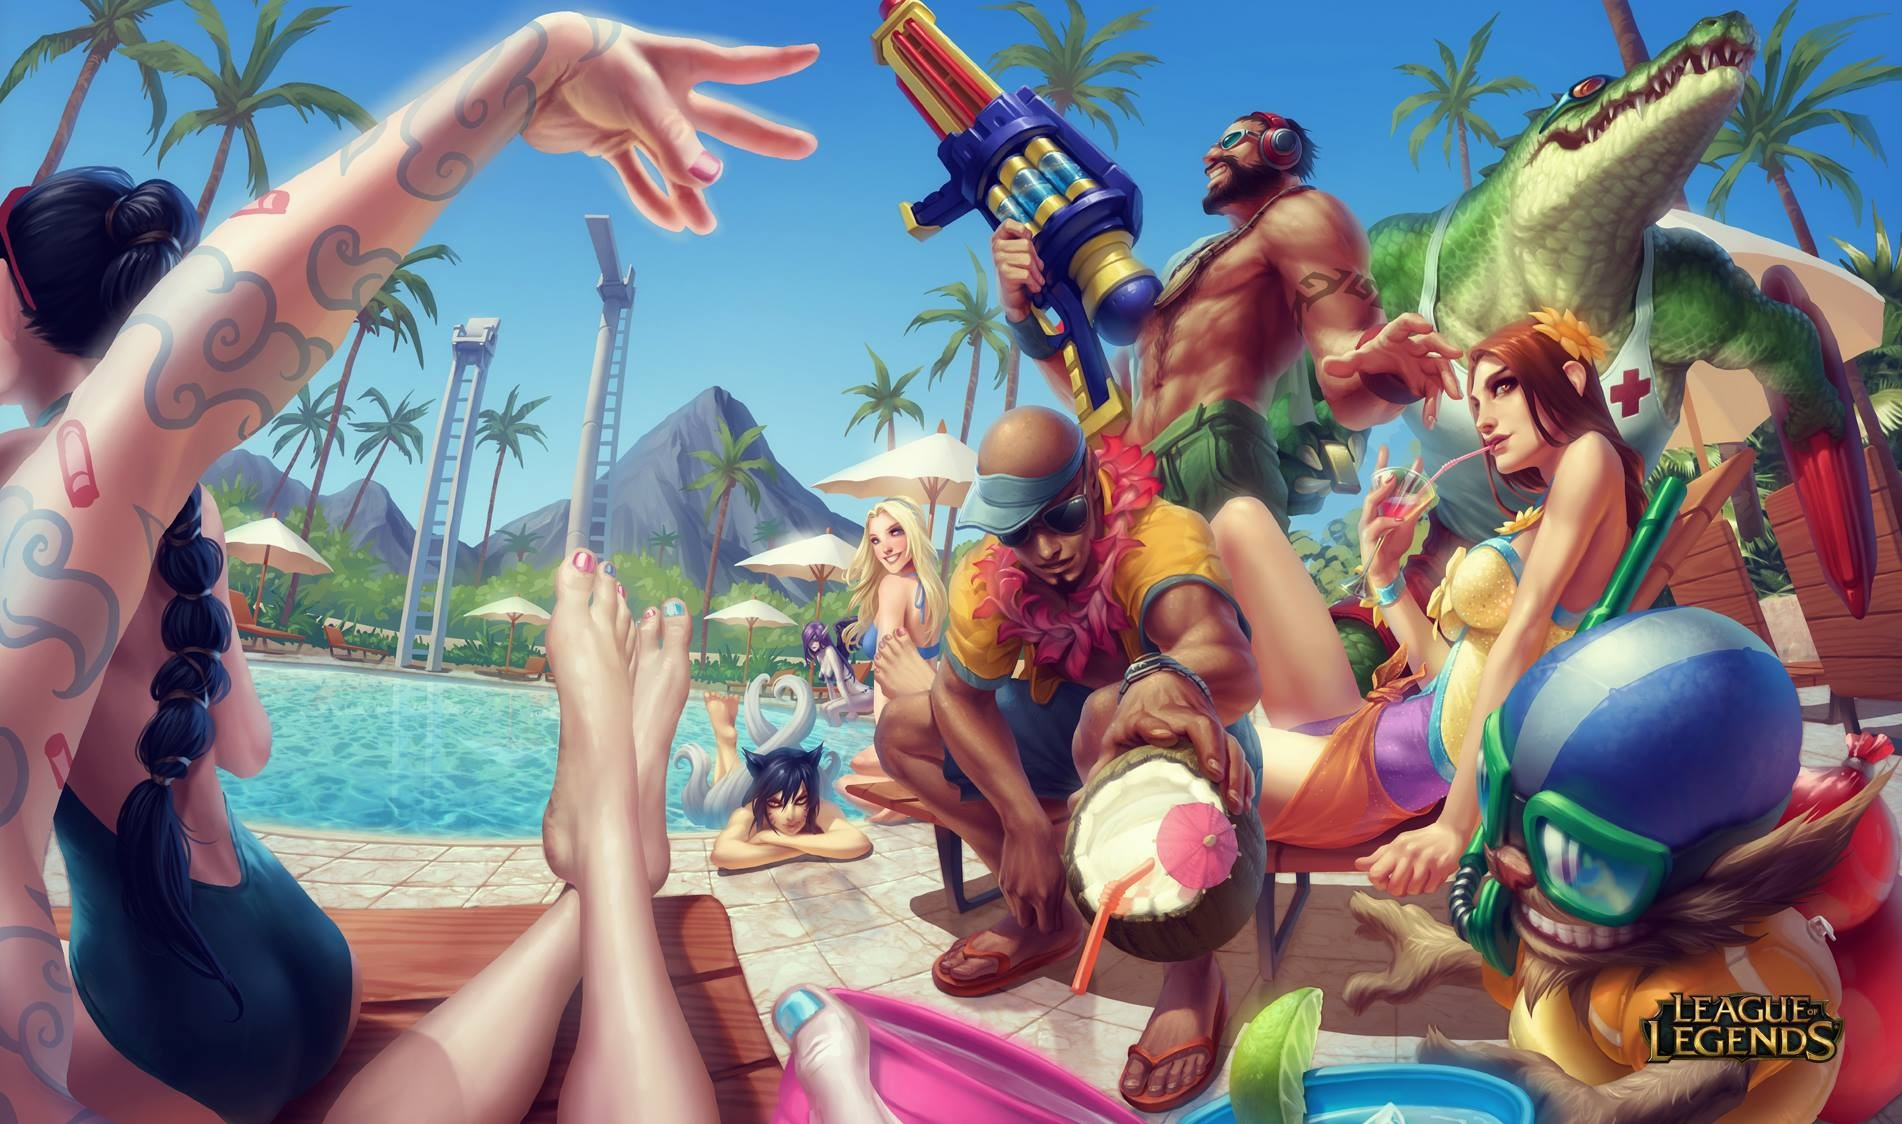 So No Pool Party Skins This Summer Leagueoflegends